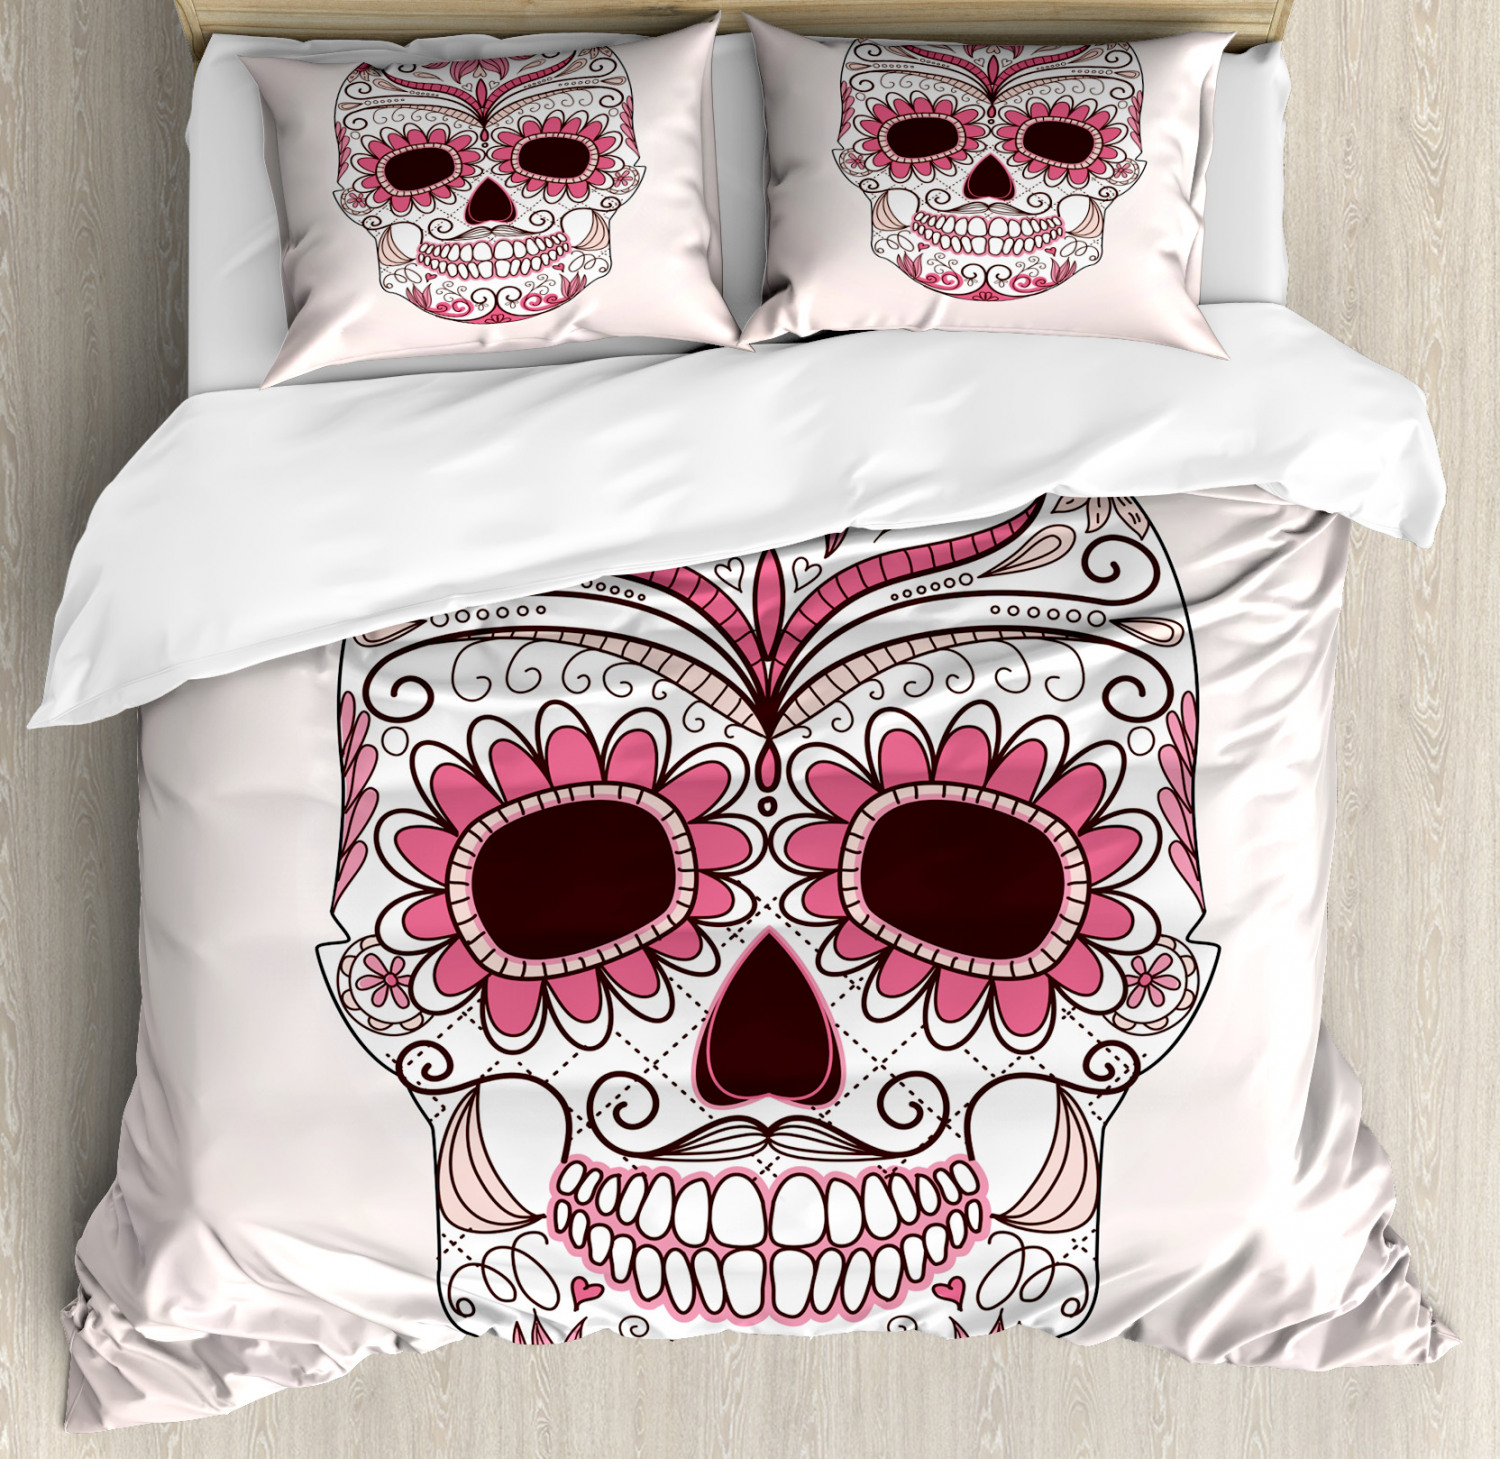 Sugar Skull Duvet Cover Set with Pillow Shams Mexican Ornaments Print